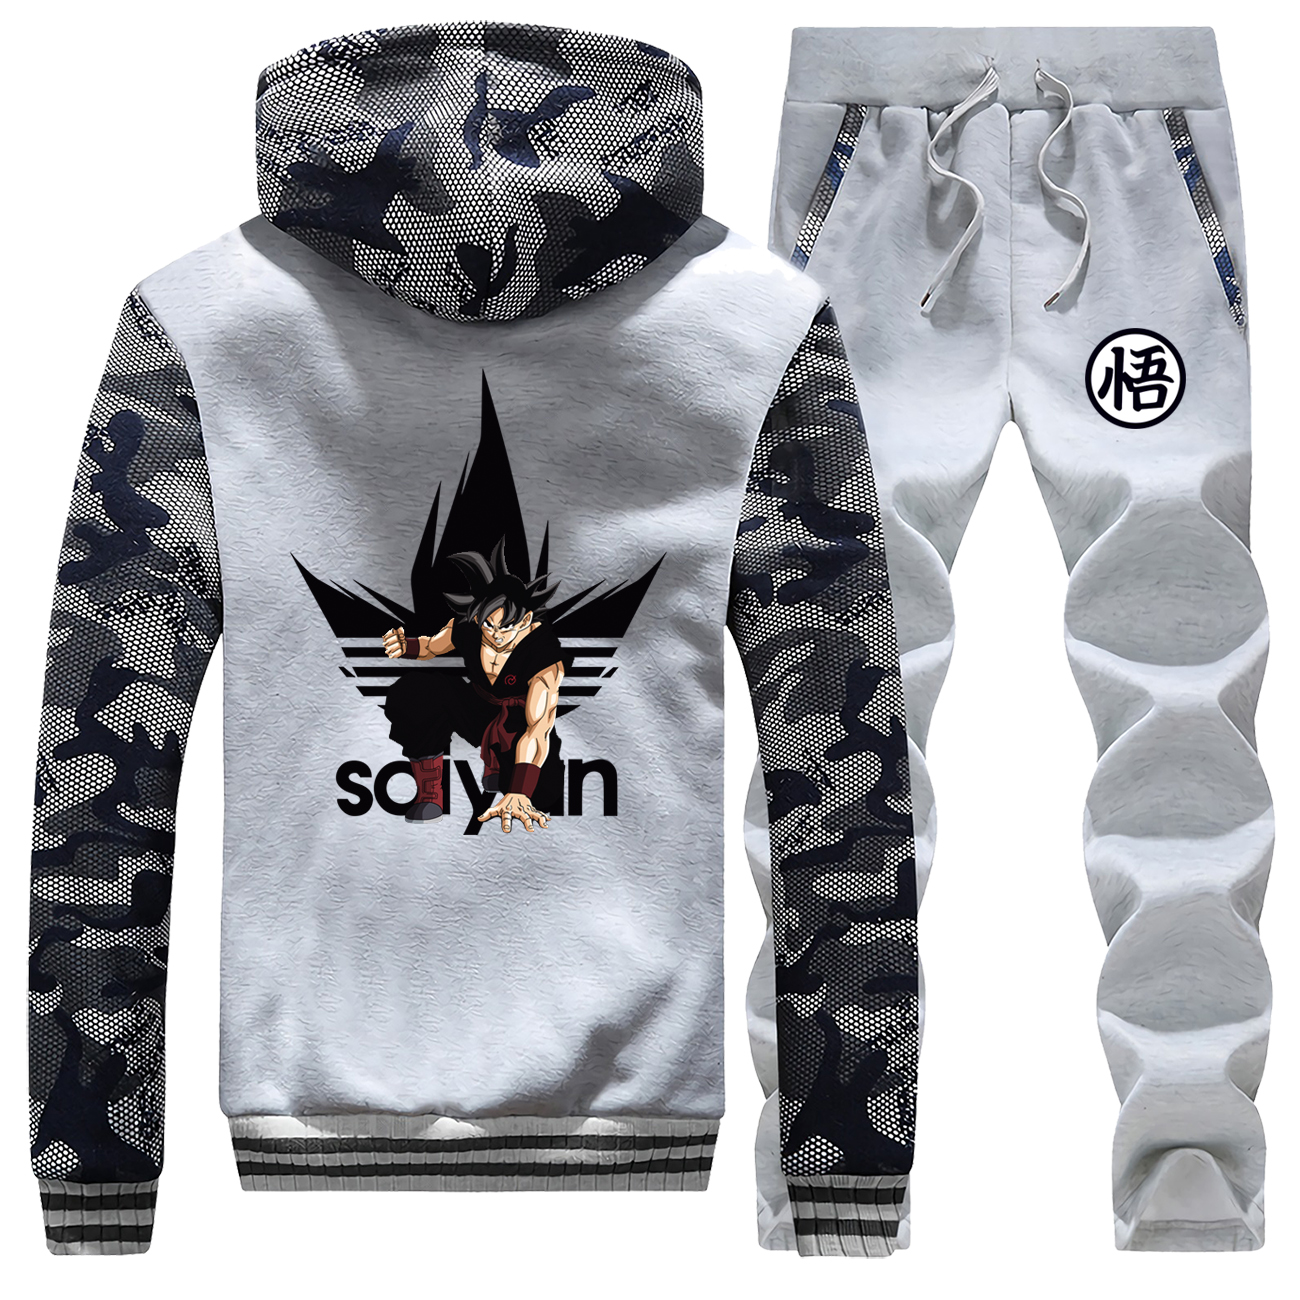 Japanese Anime Brand Tracksuit Dragon Ball Z Men's Thick Sets Super Saiyan Jackets 2019 Winter Harajuku Camo Pants Sweatshirts